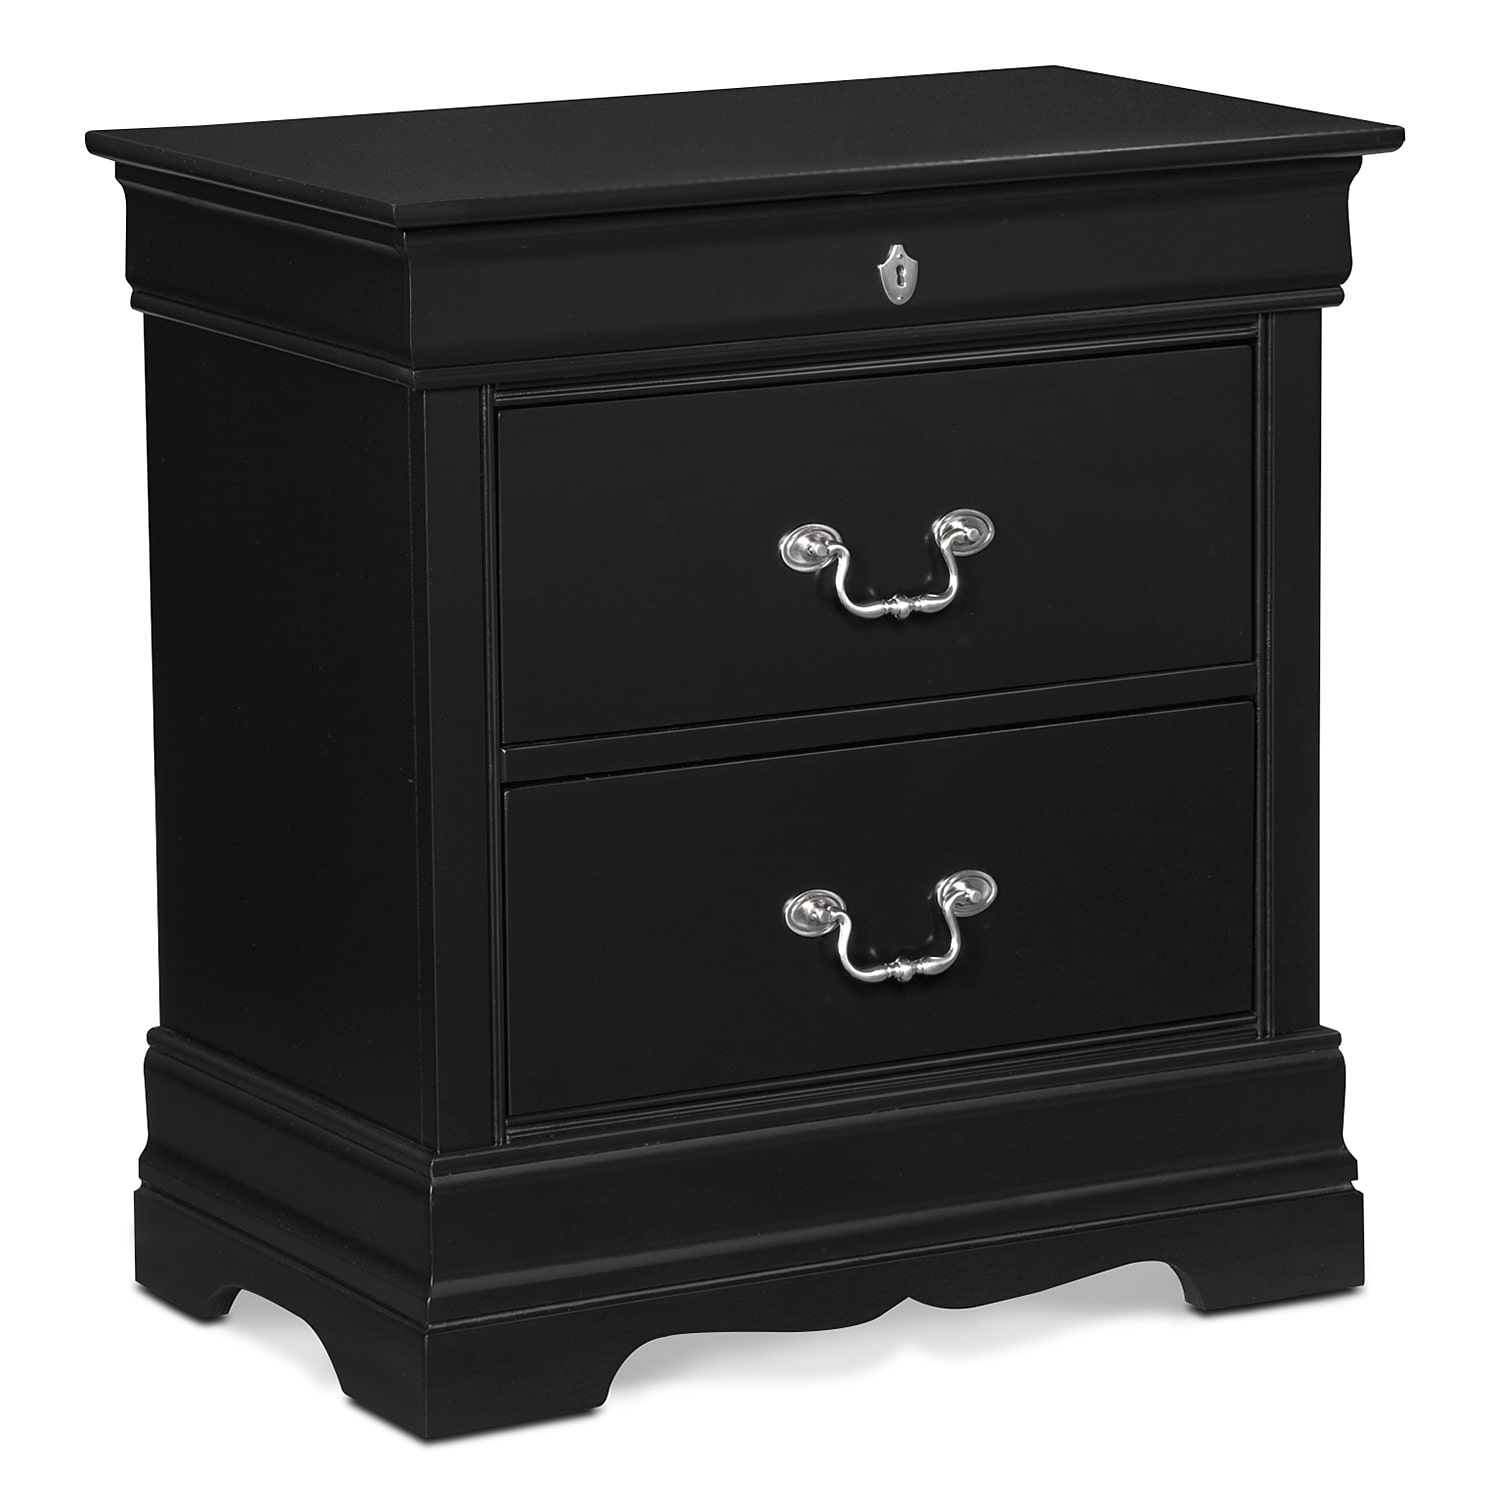 The Neo Classic Collection Black Value City Furniture